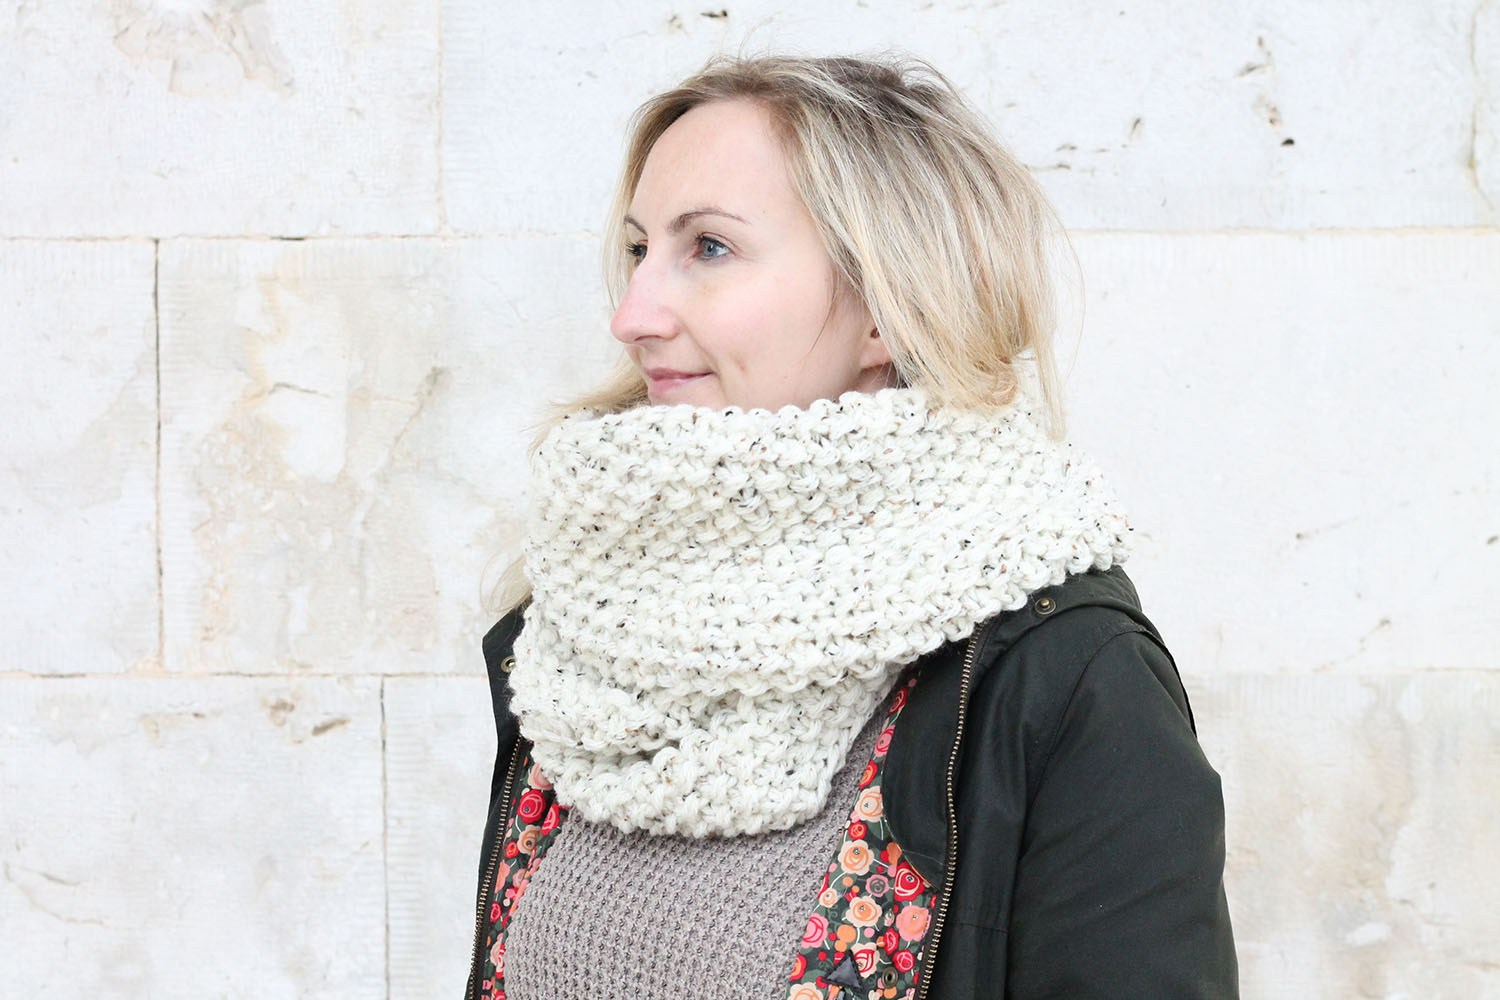 Infinity Scarf - We've gathered here 21 cozy scarf knitting patterns that you can knit quickly, just in time for fall and impending winter. #ScarfKnittingPatterns #KnittingPatterns #ScarfPatterns